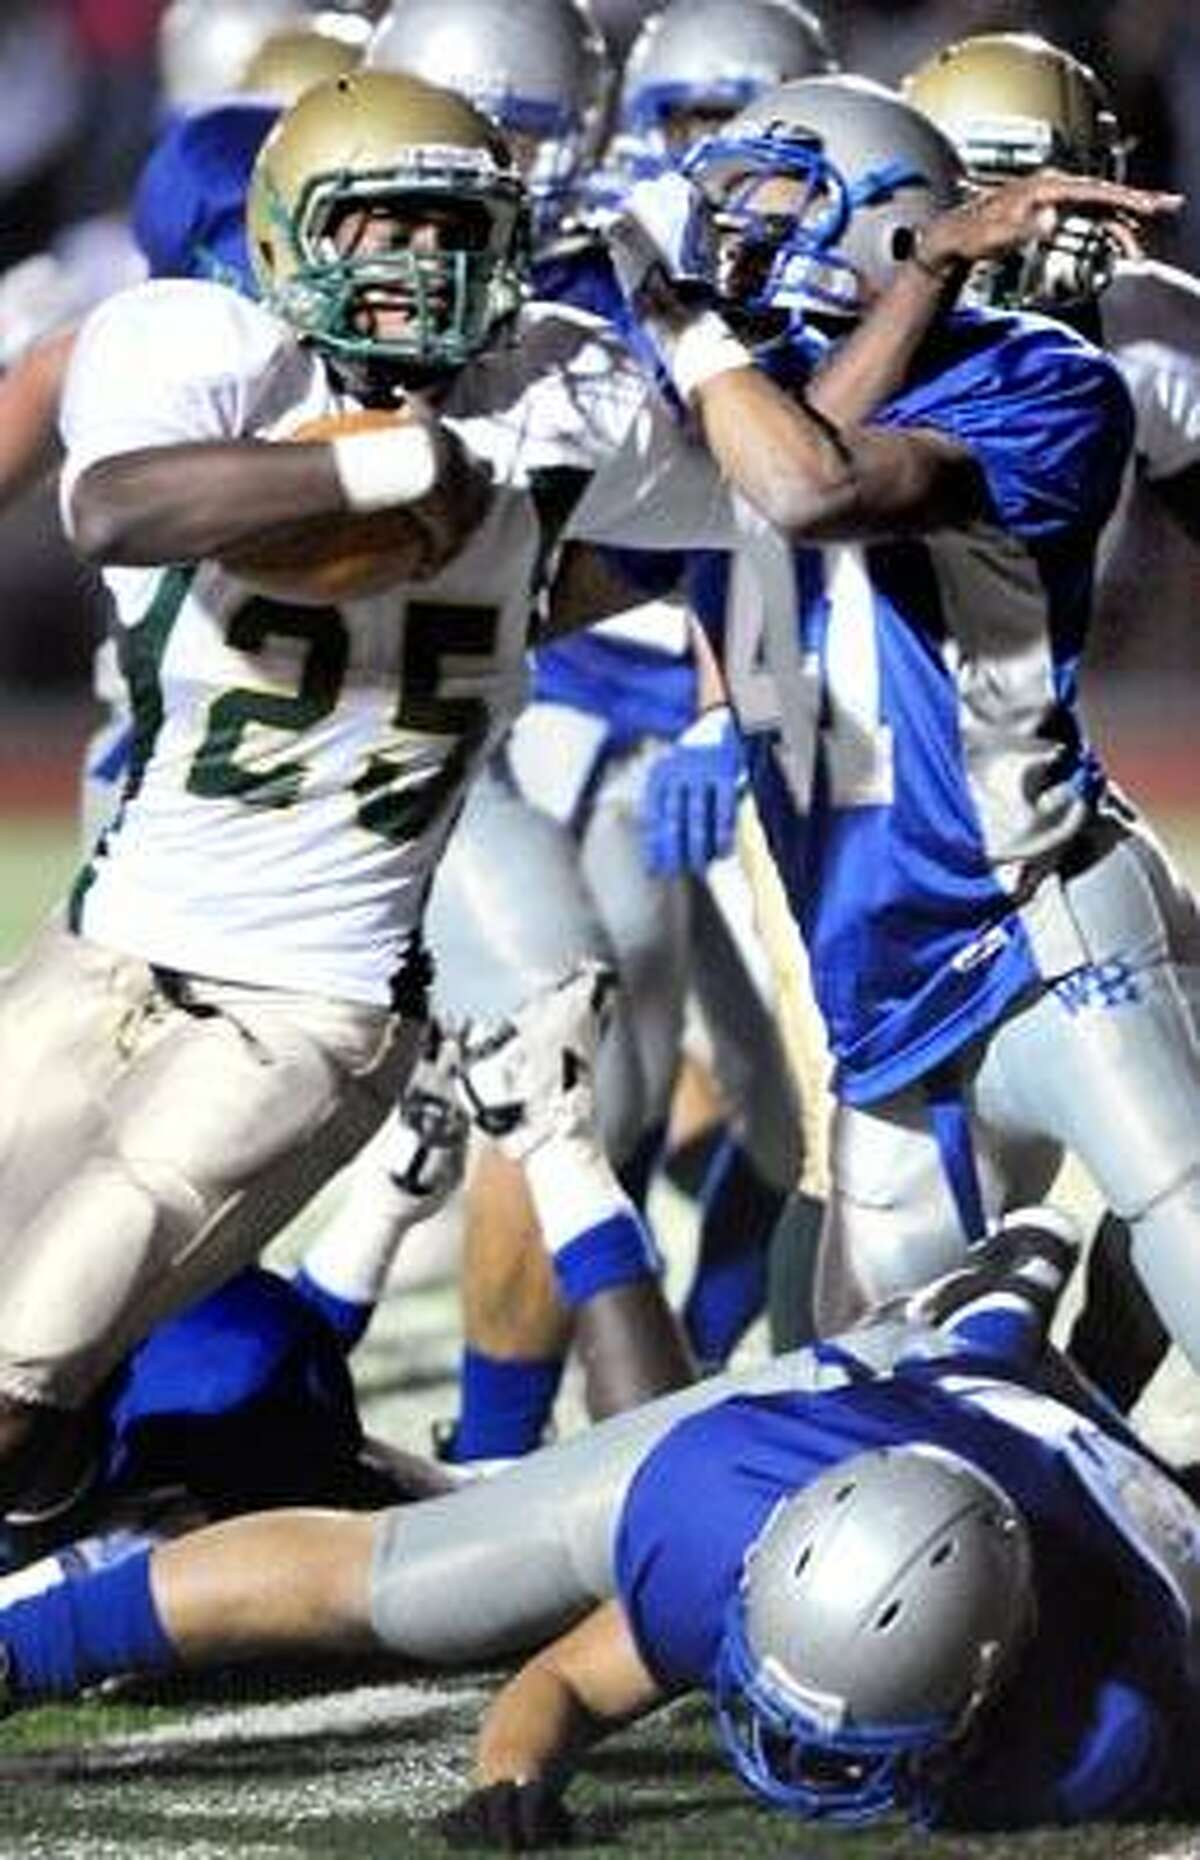 Notre Dame-West Haven's David Rose (25) is stopped by Andre Gee and the West Haven defense during first-half action in the Westies' 28-27 upset of the sixth-ranked Green Knights Friday night. (Arnold Gold/Register)